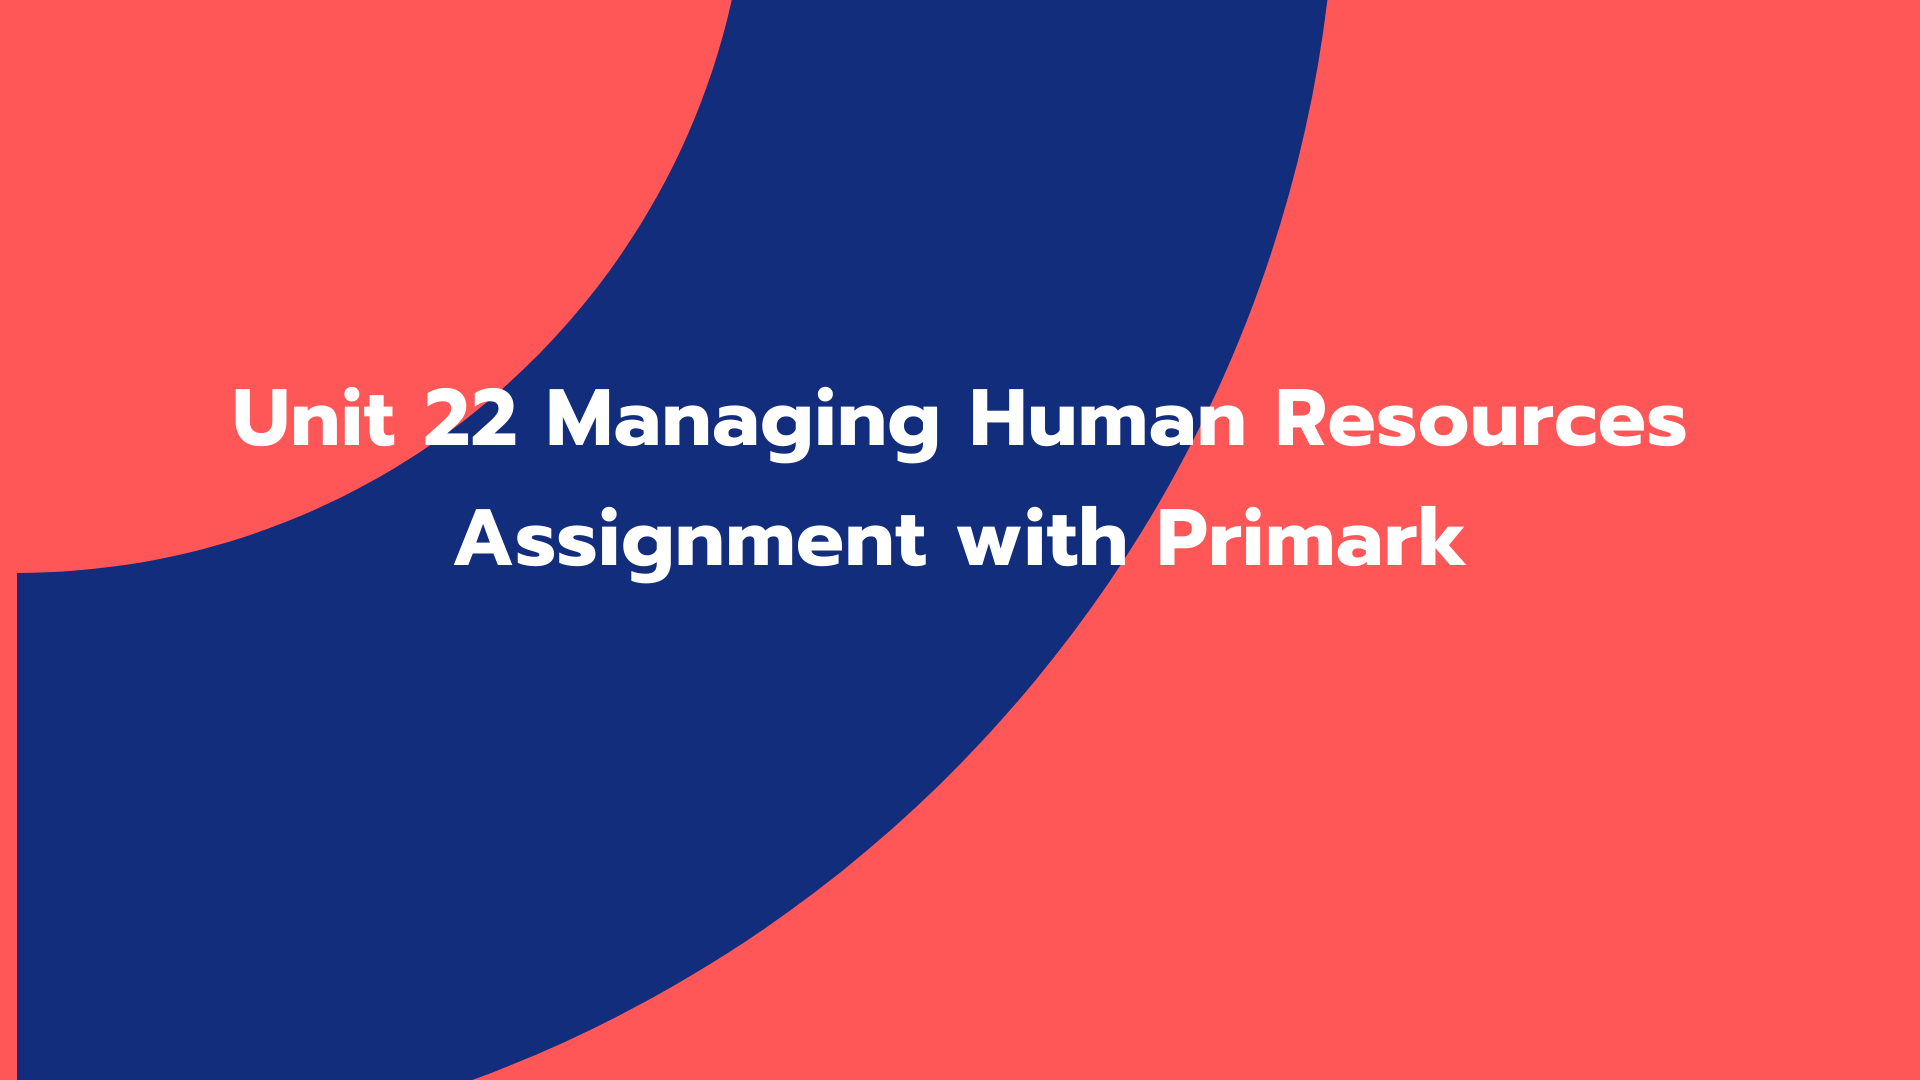 Unit 22 Managing Human Resources Assignment with Primark